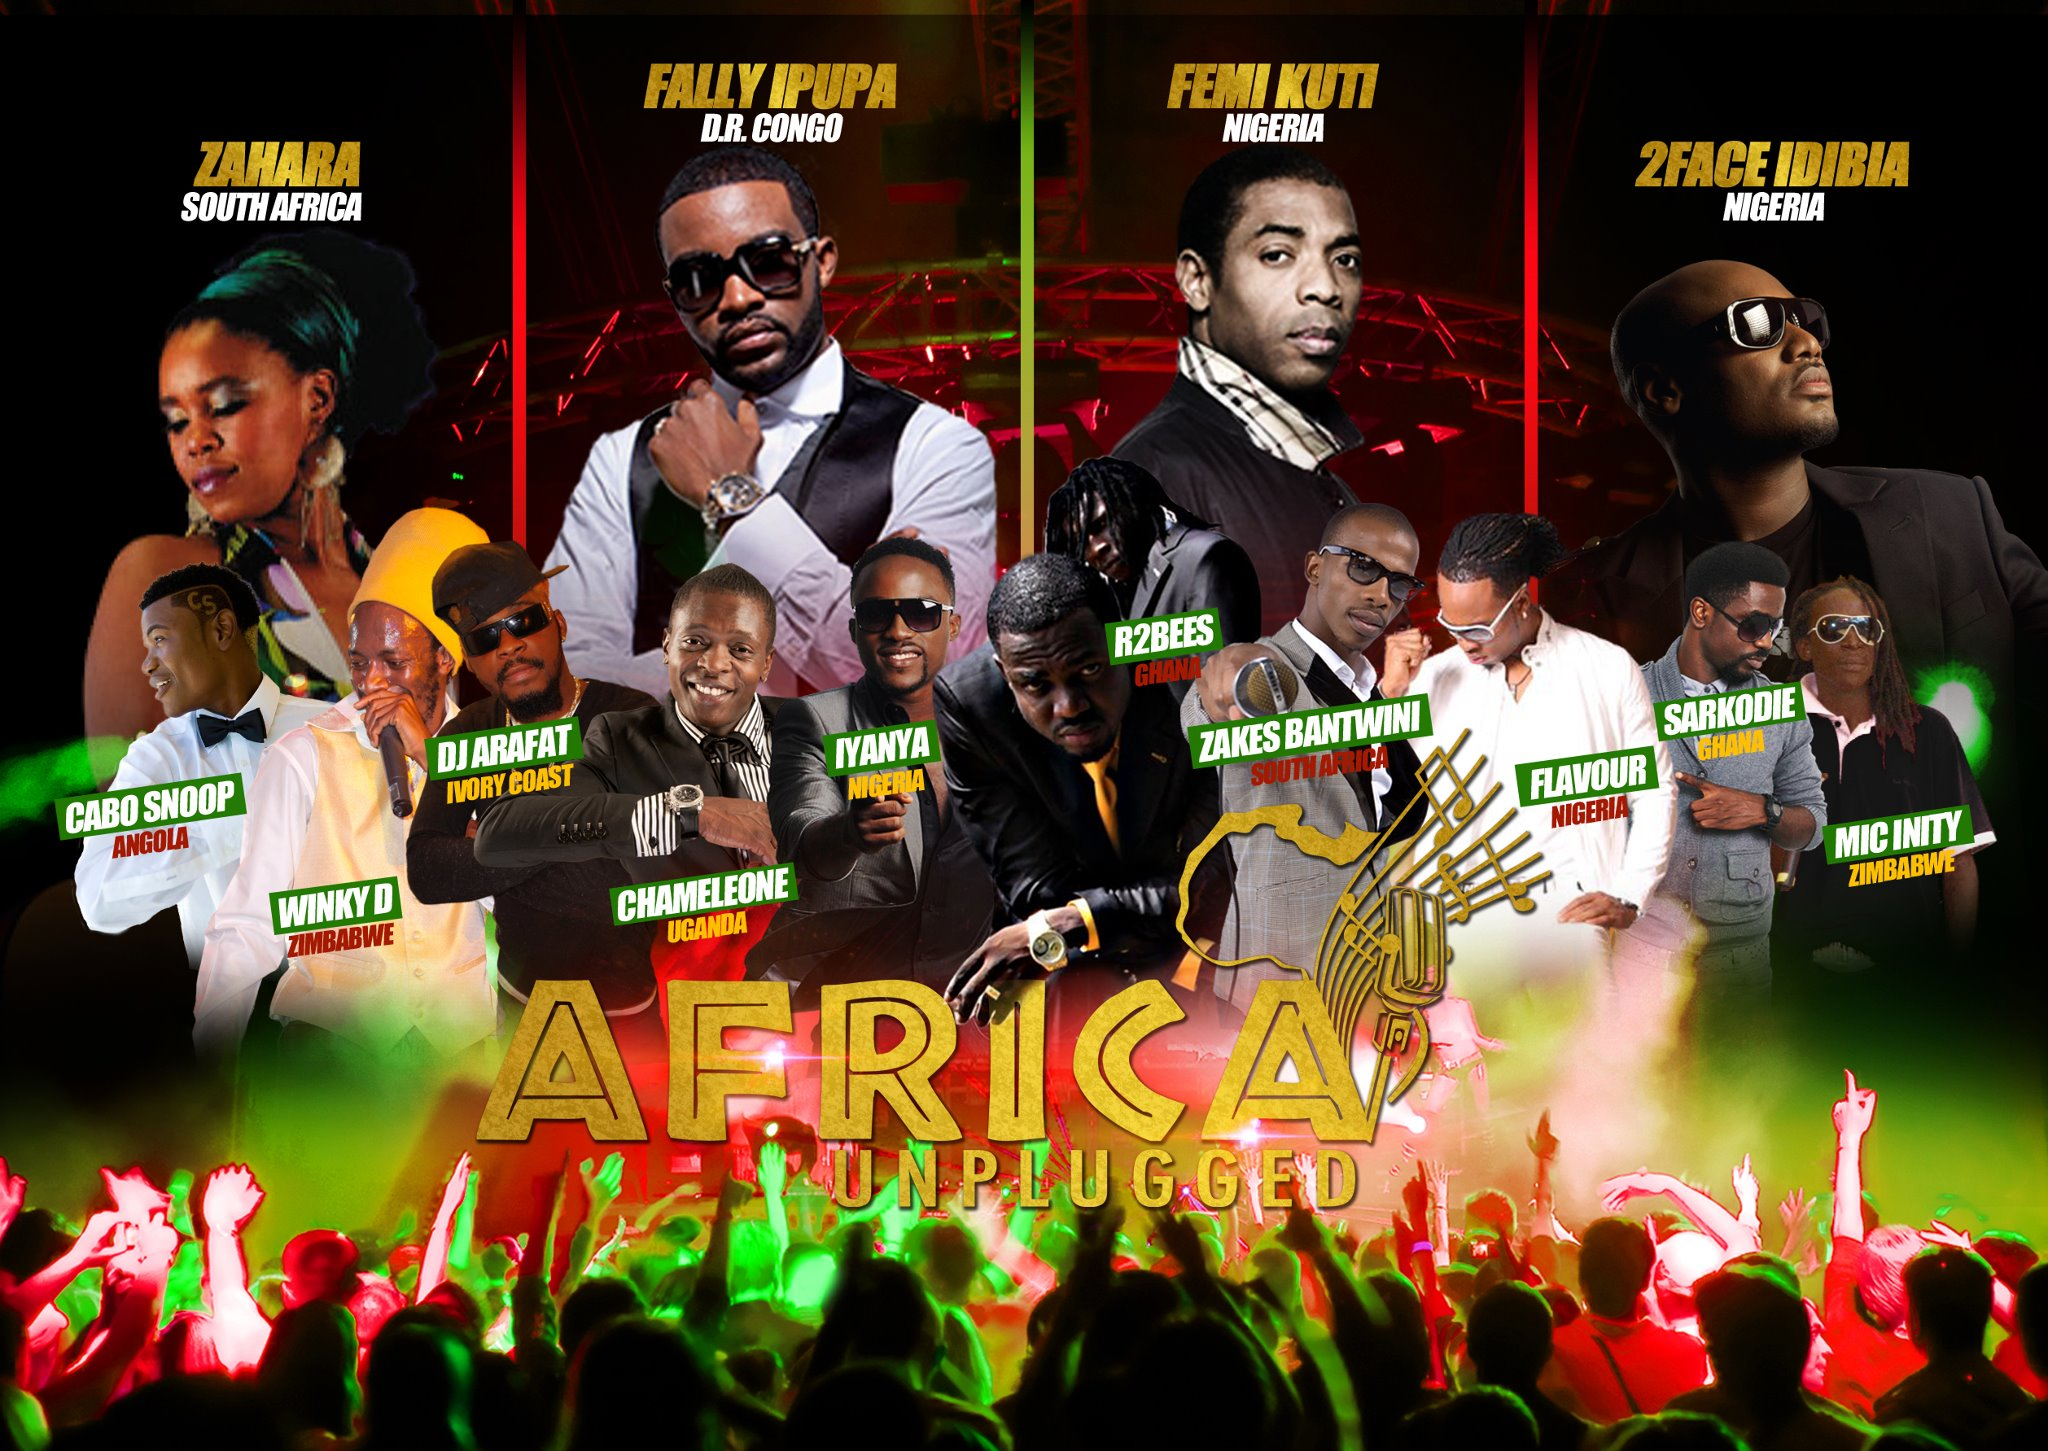 Africa Unplugged Music Festival Will Take Place On Bank Holiday Monday The 27th Of August 2012 At Wembley Arena Hosted By Eddi Kadi